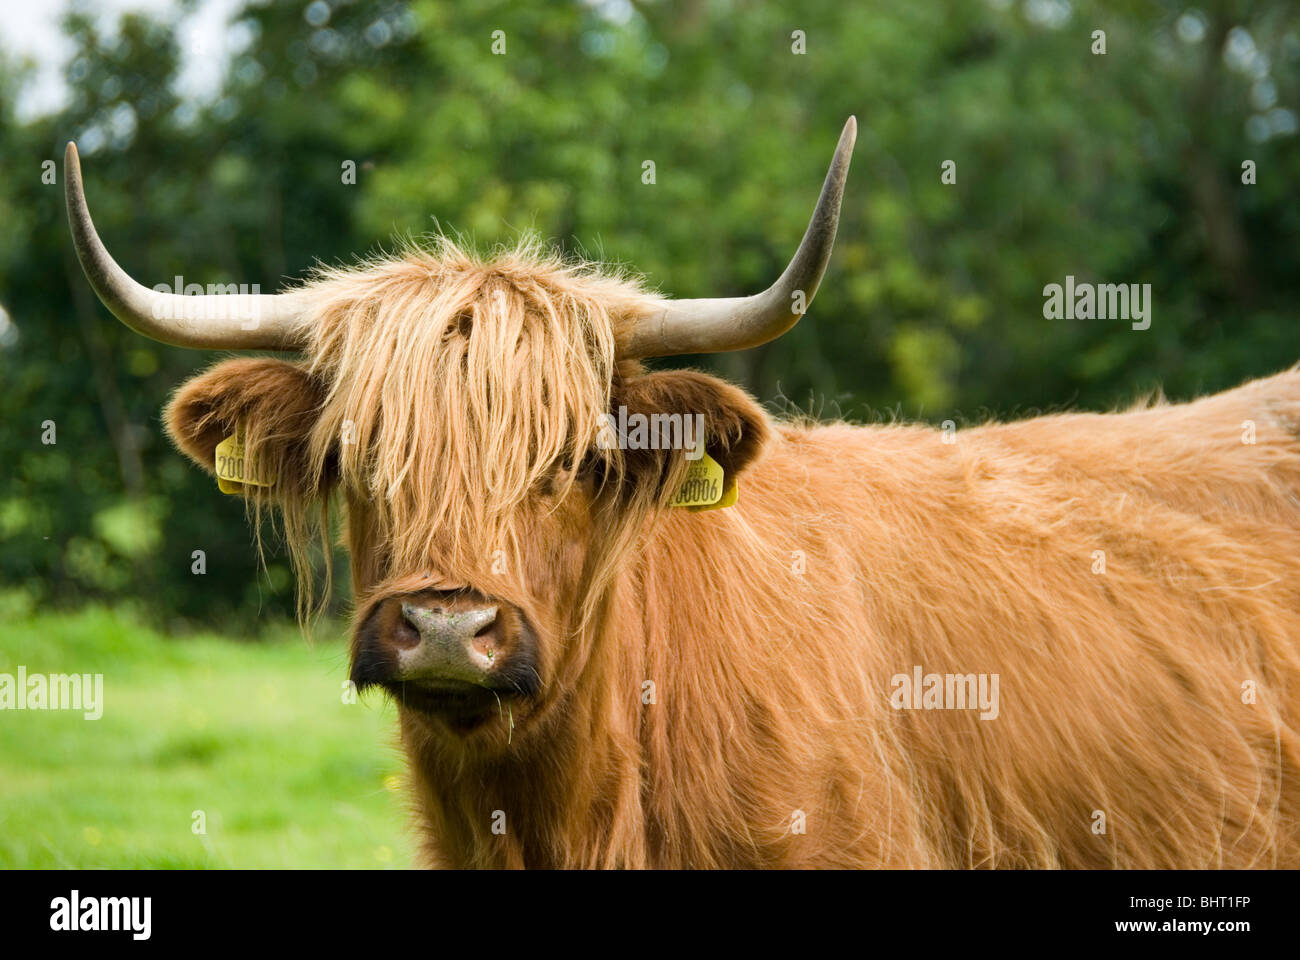 close up on face and horns of a hairy brown pure breed highland